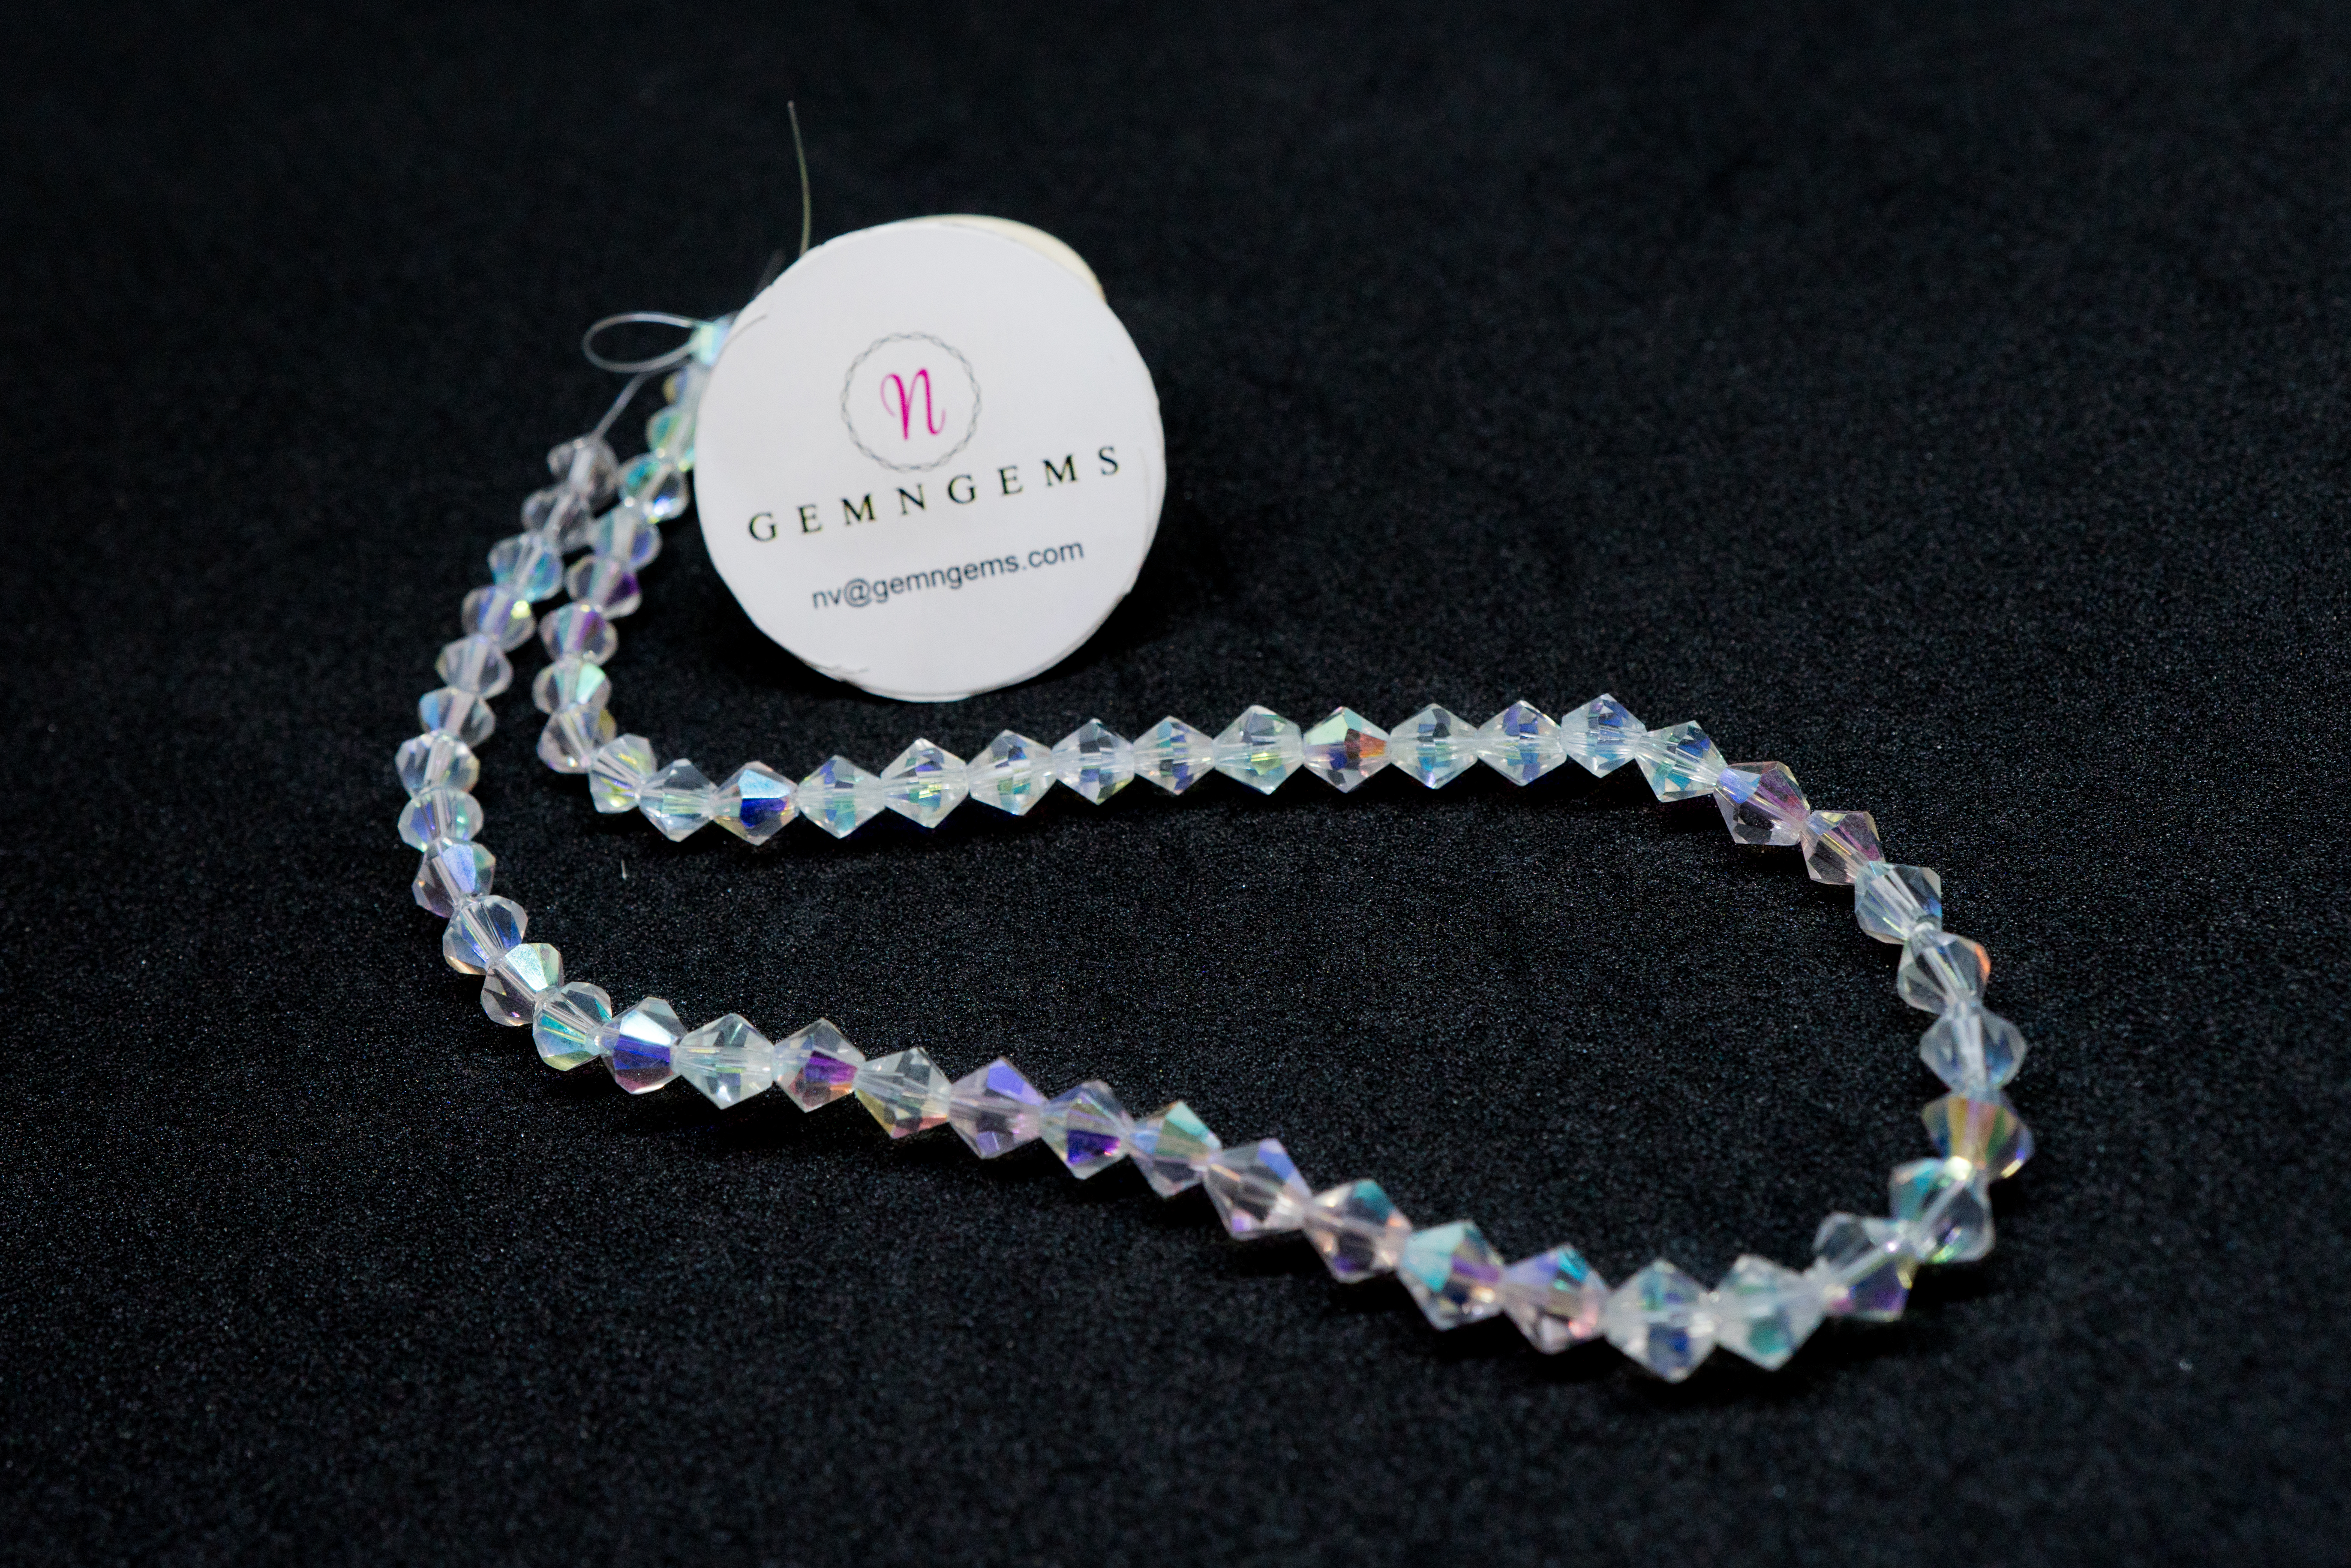 ecf0f7df5 6 mm Clear Crystal AB Color Bicone Beads Bead Strands